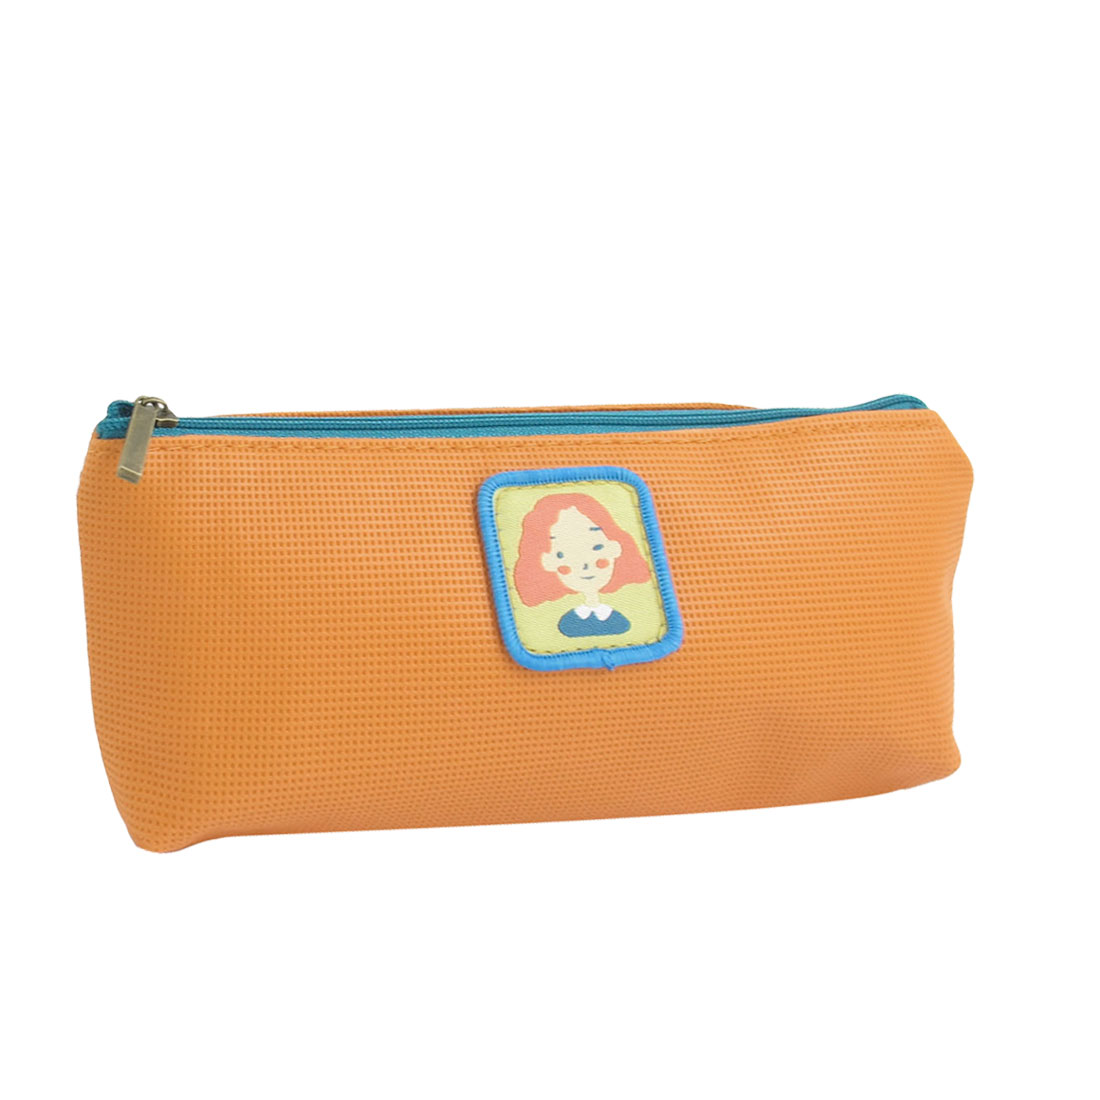 Faux Leather Zipper Closure Student Stationery Pencil Pen Bag Holder Orange